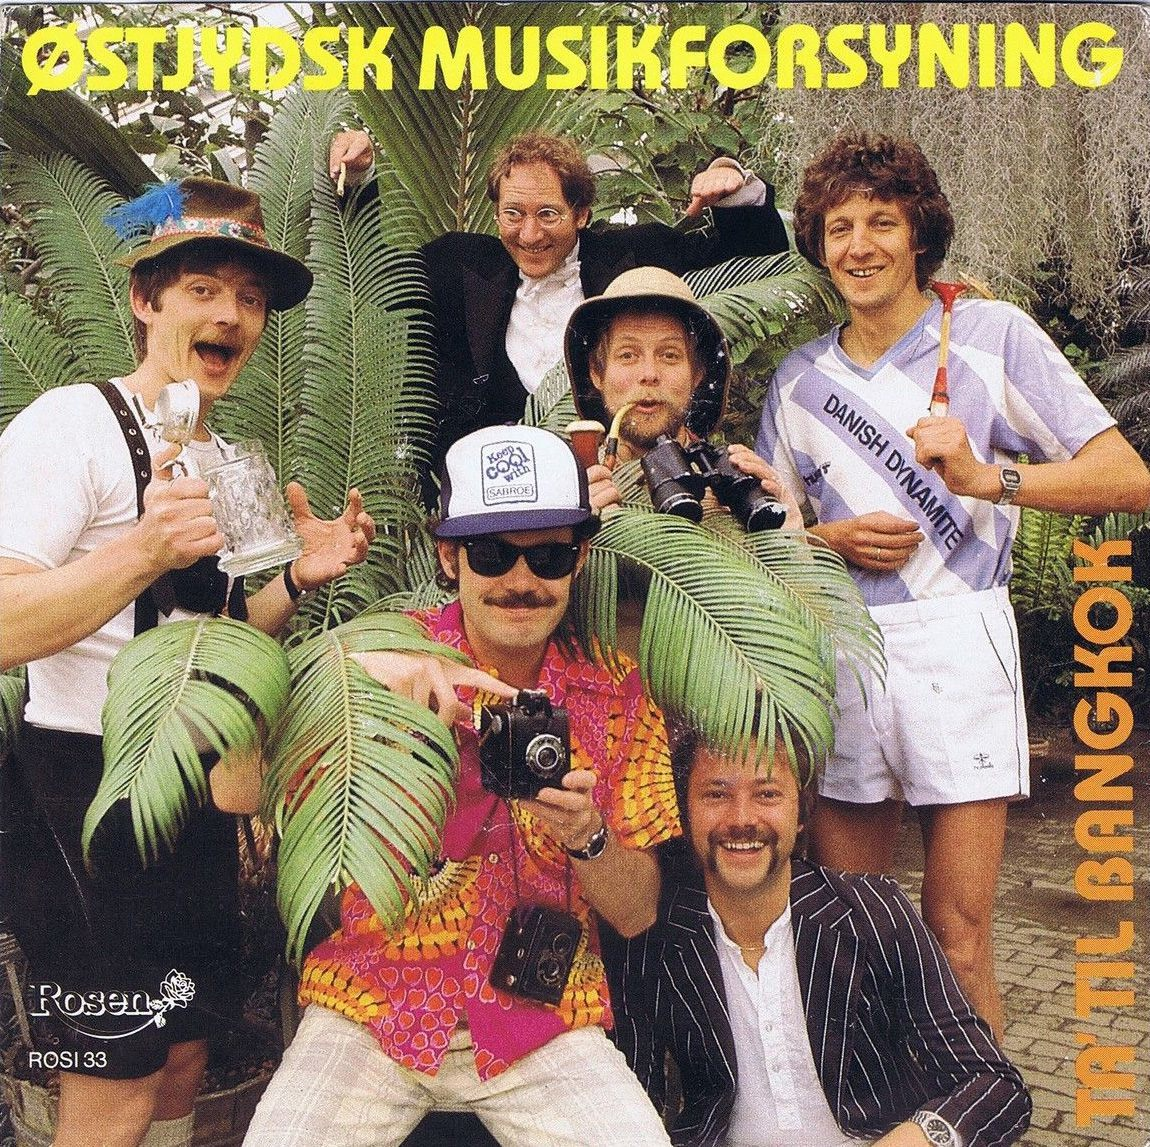 ØSTJYSK MUSIKFORSYNING Go To Bangkok Danish Pop 45PS 1985